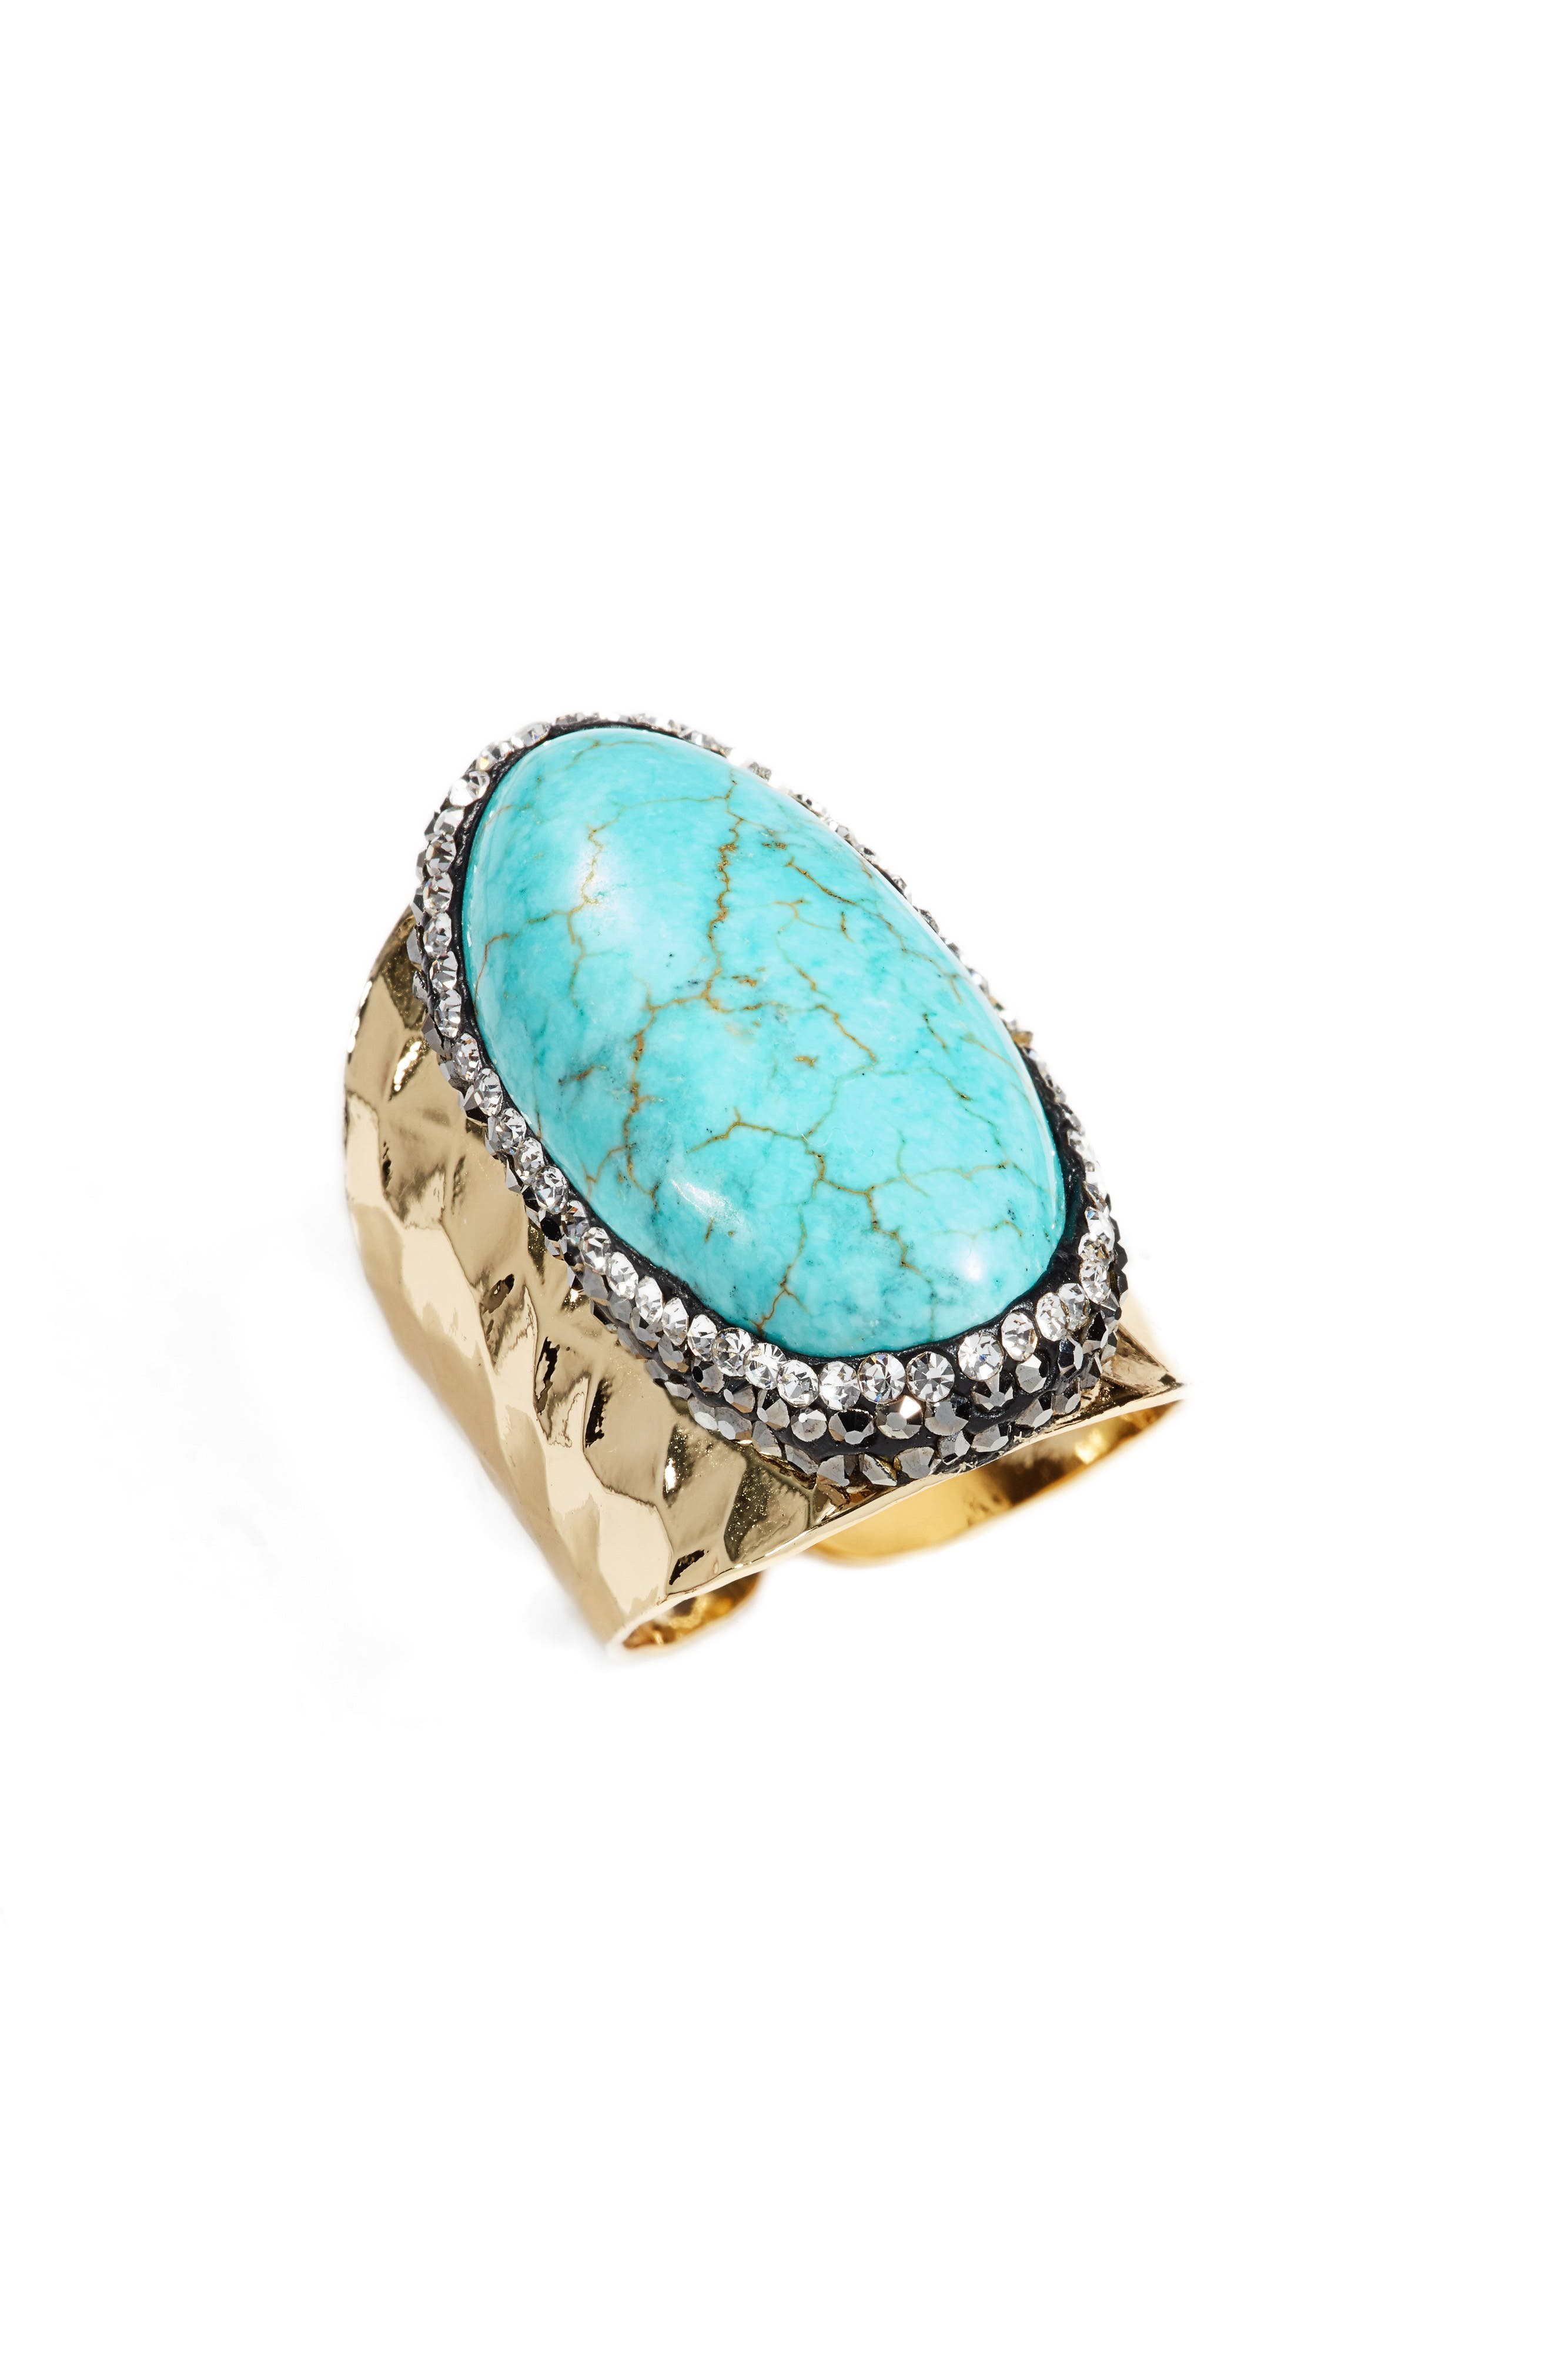 Queenie Turqoise Adjustable Ring,                         Main,                         color, Opal/ Turquoise